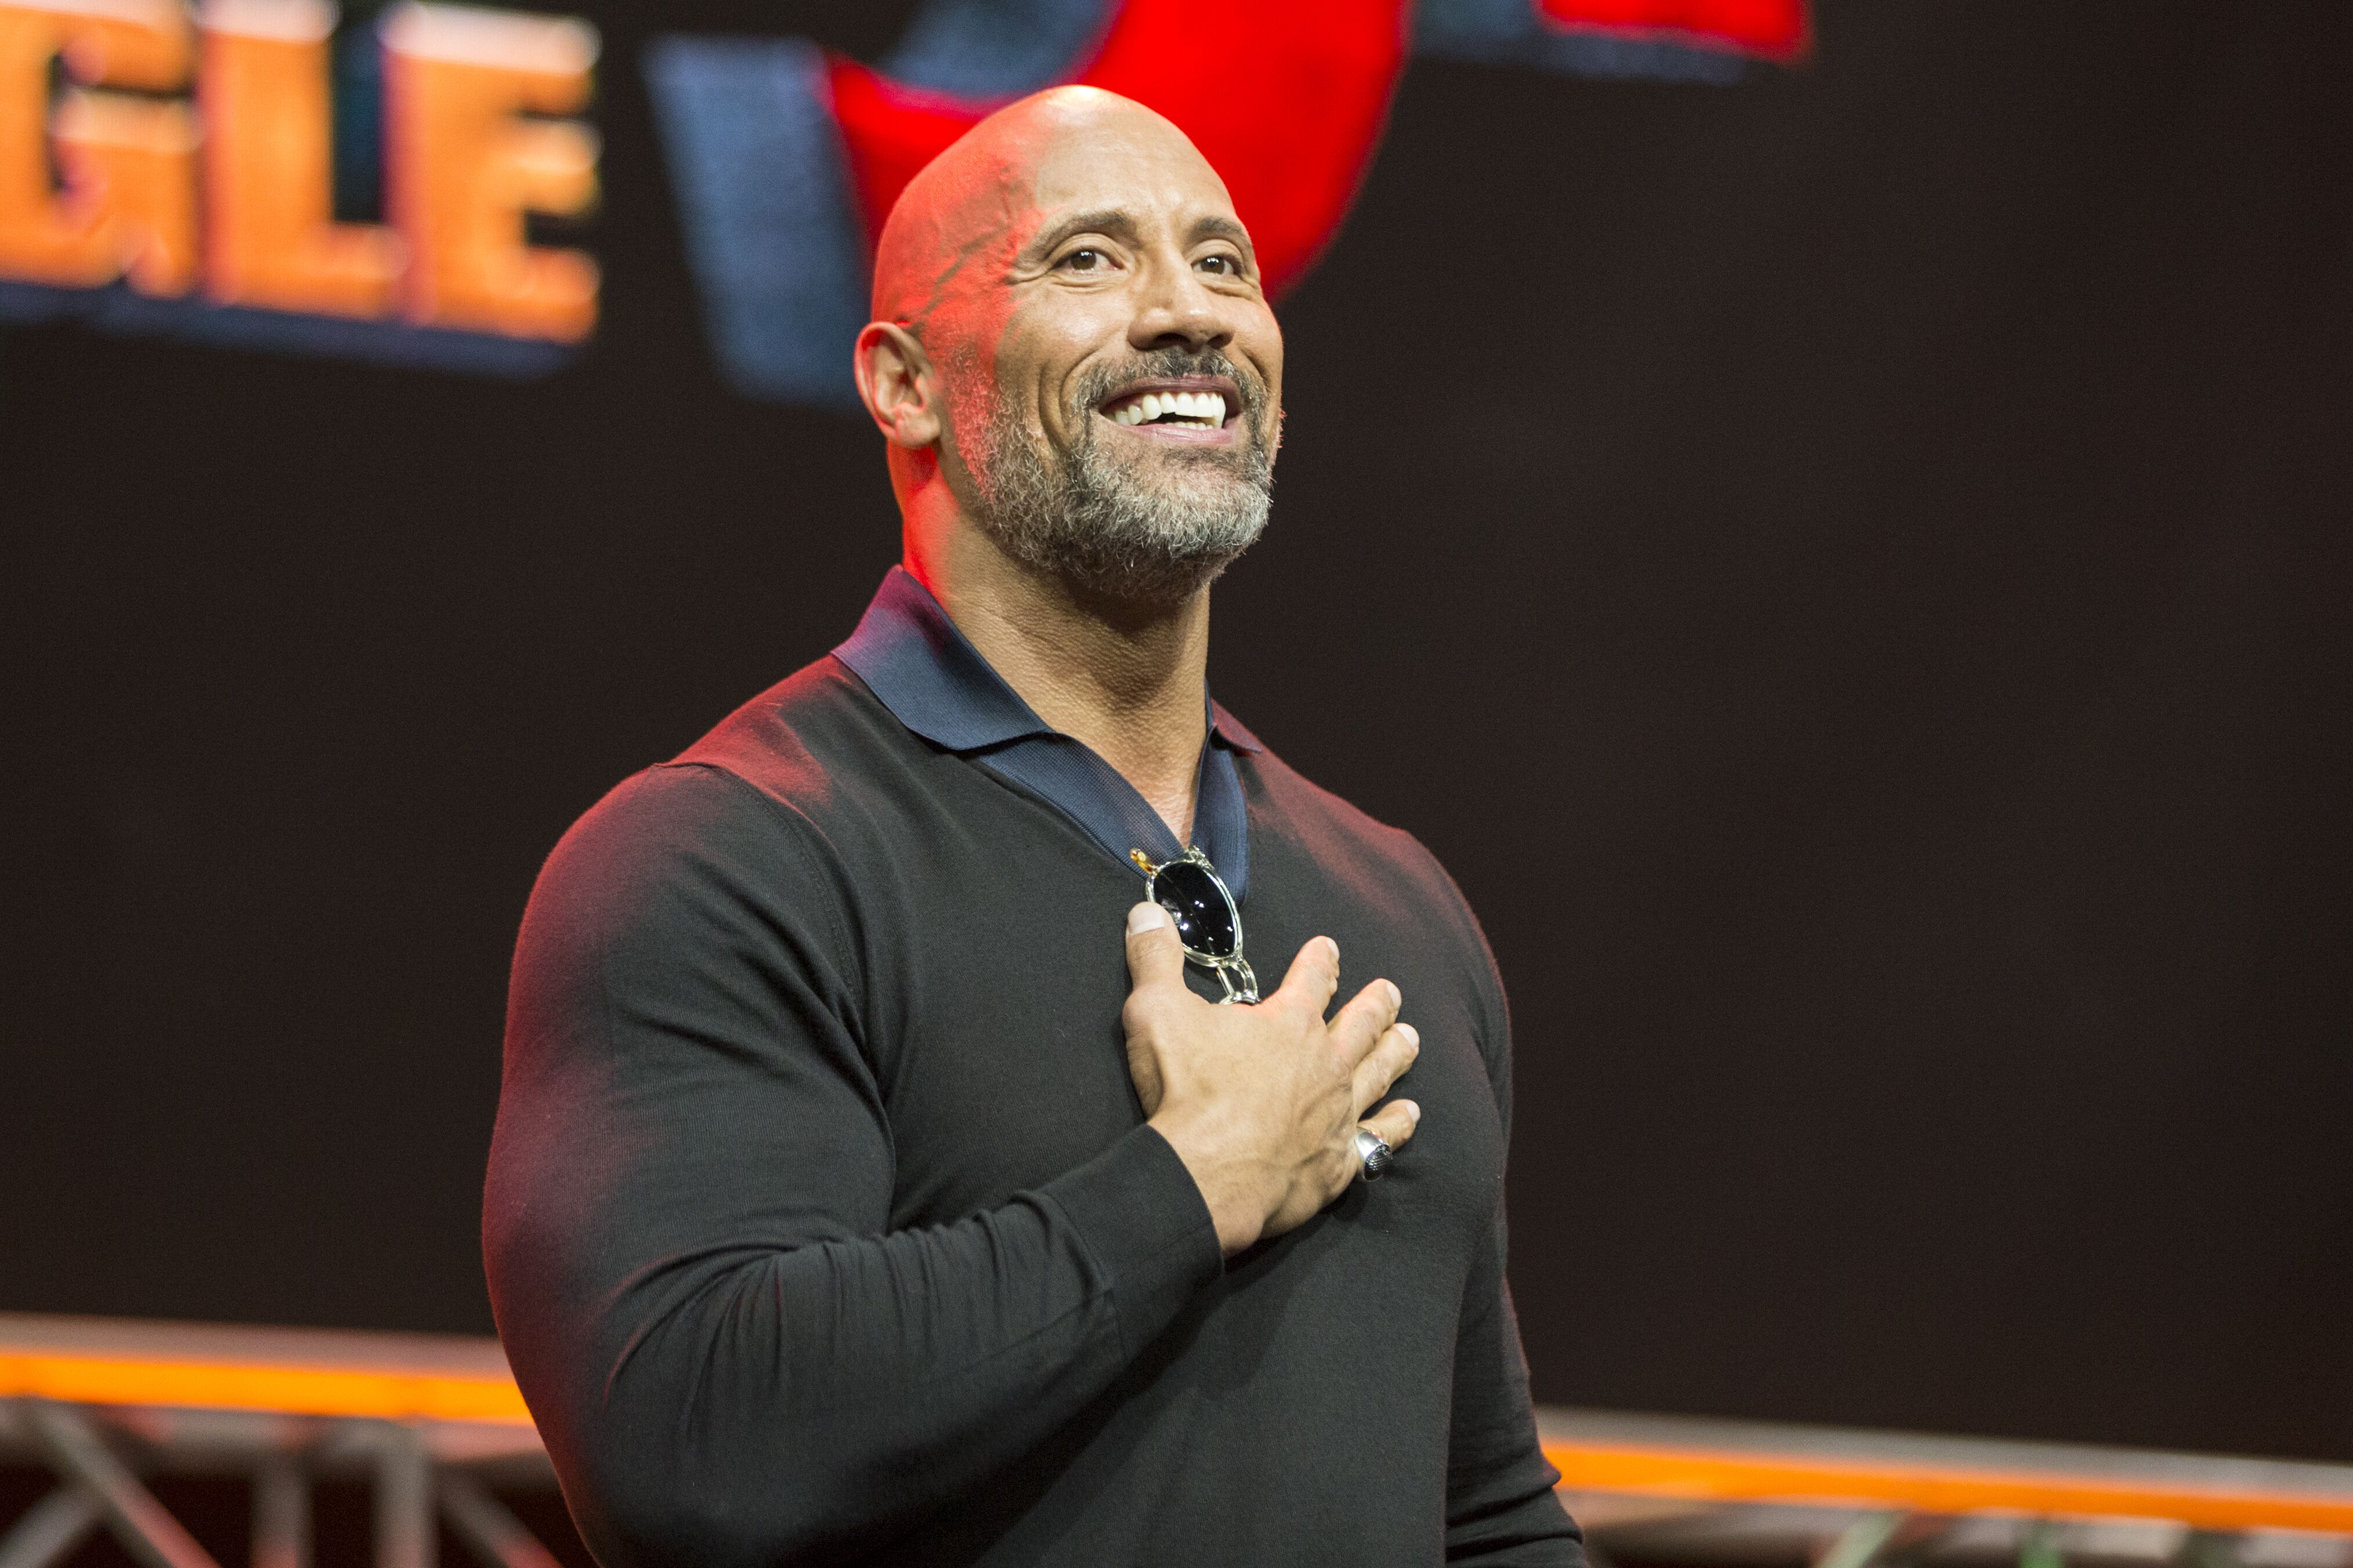 867633016-entertainment-weekly-presents-dwayne-the-rock-johnson-at-stan-lees-los-angeles-comic-con-on-saturda-october-28-2017.jpg